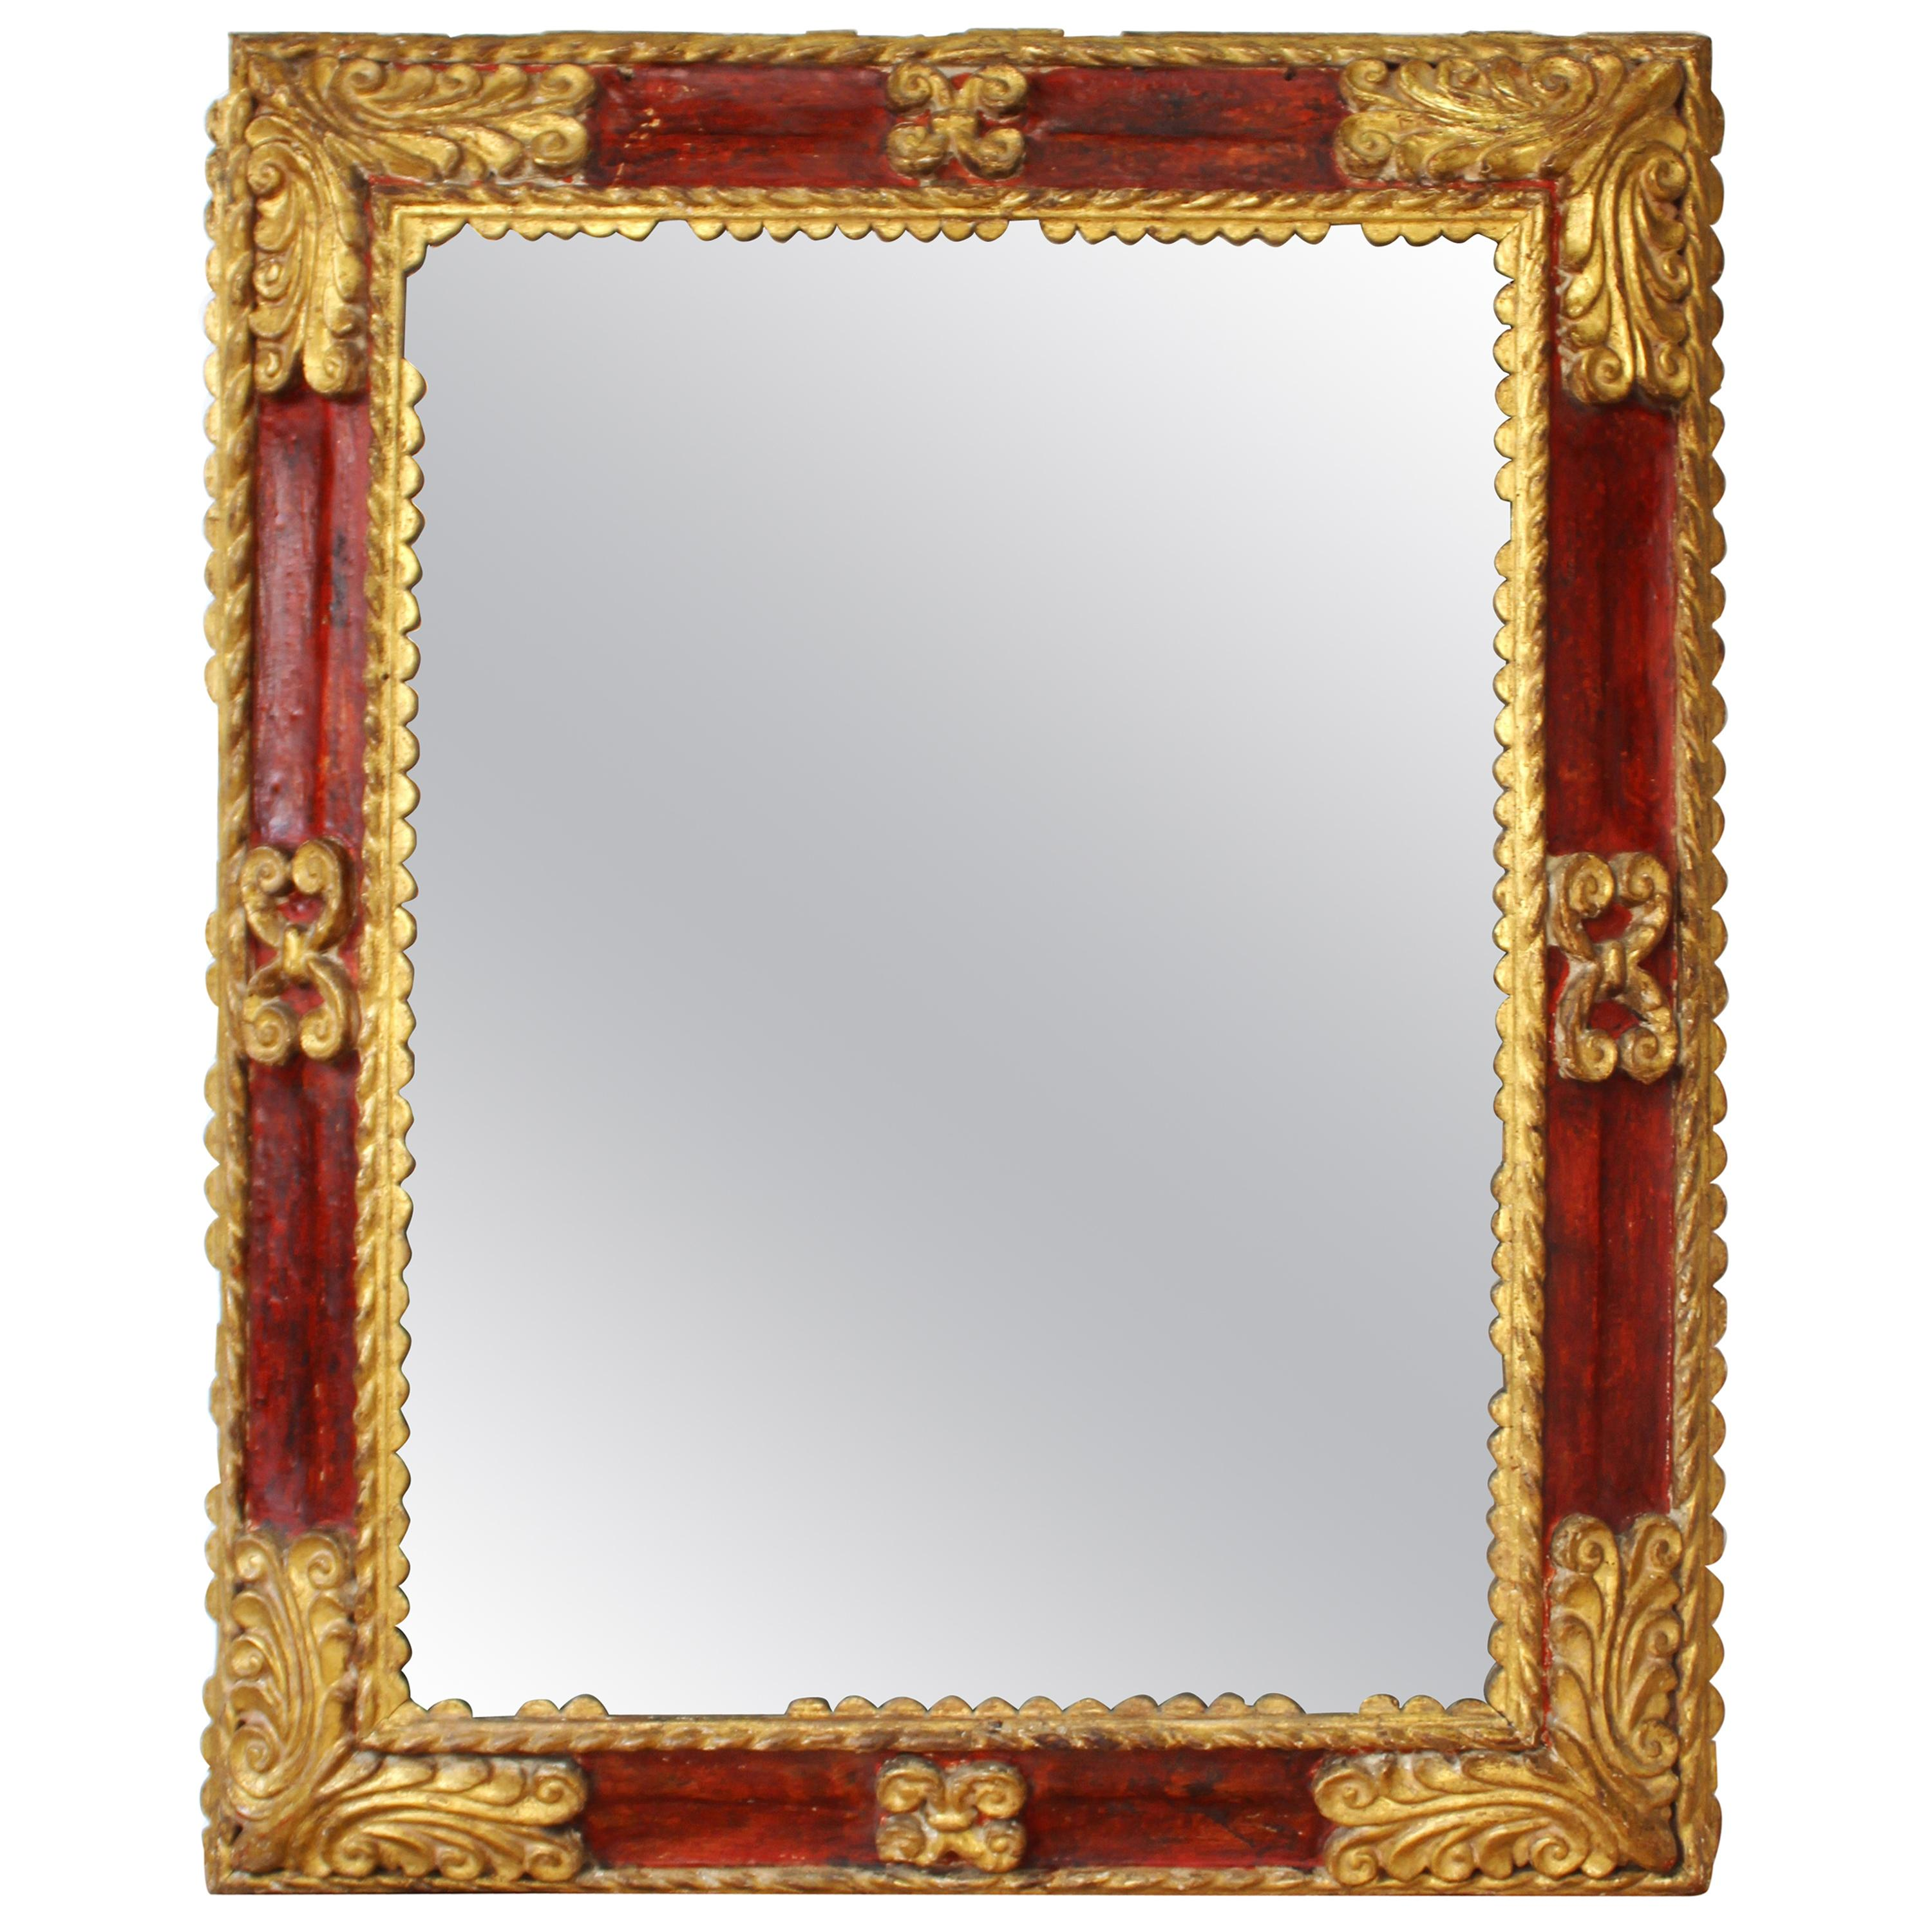 Spanish Baroque Carved and Giltwood Frame Mirror